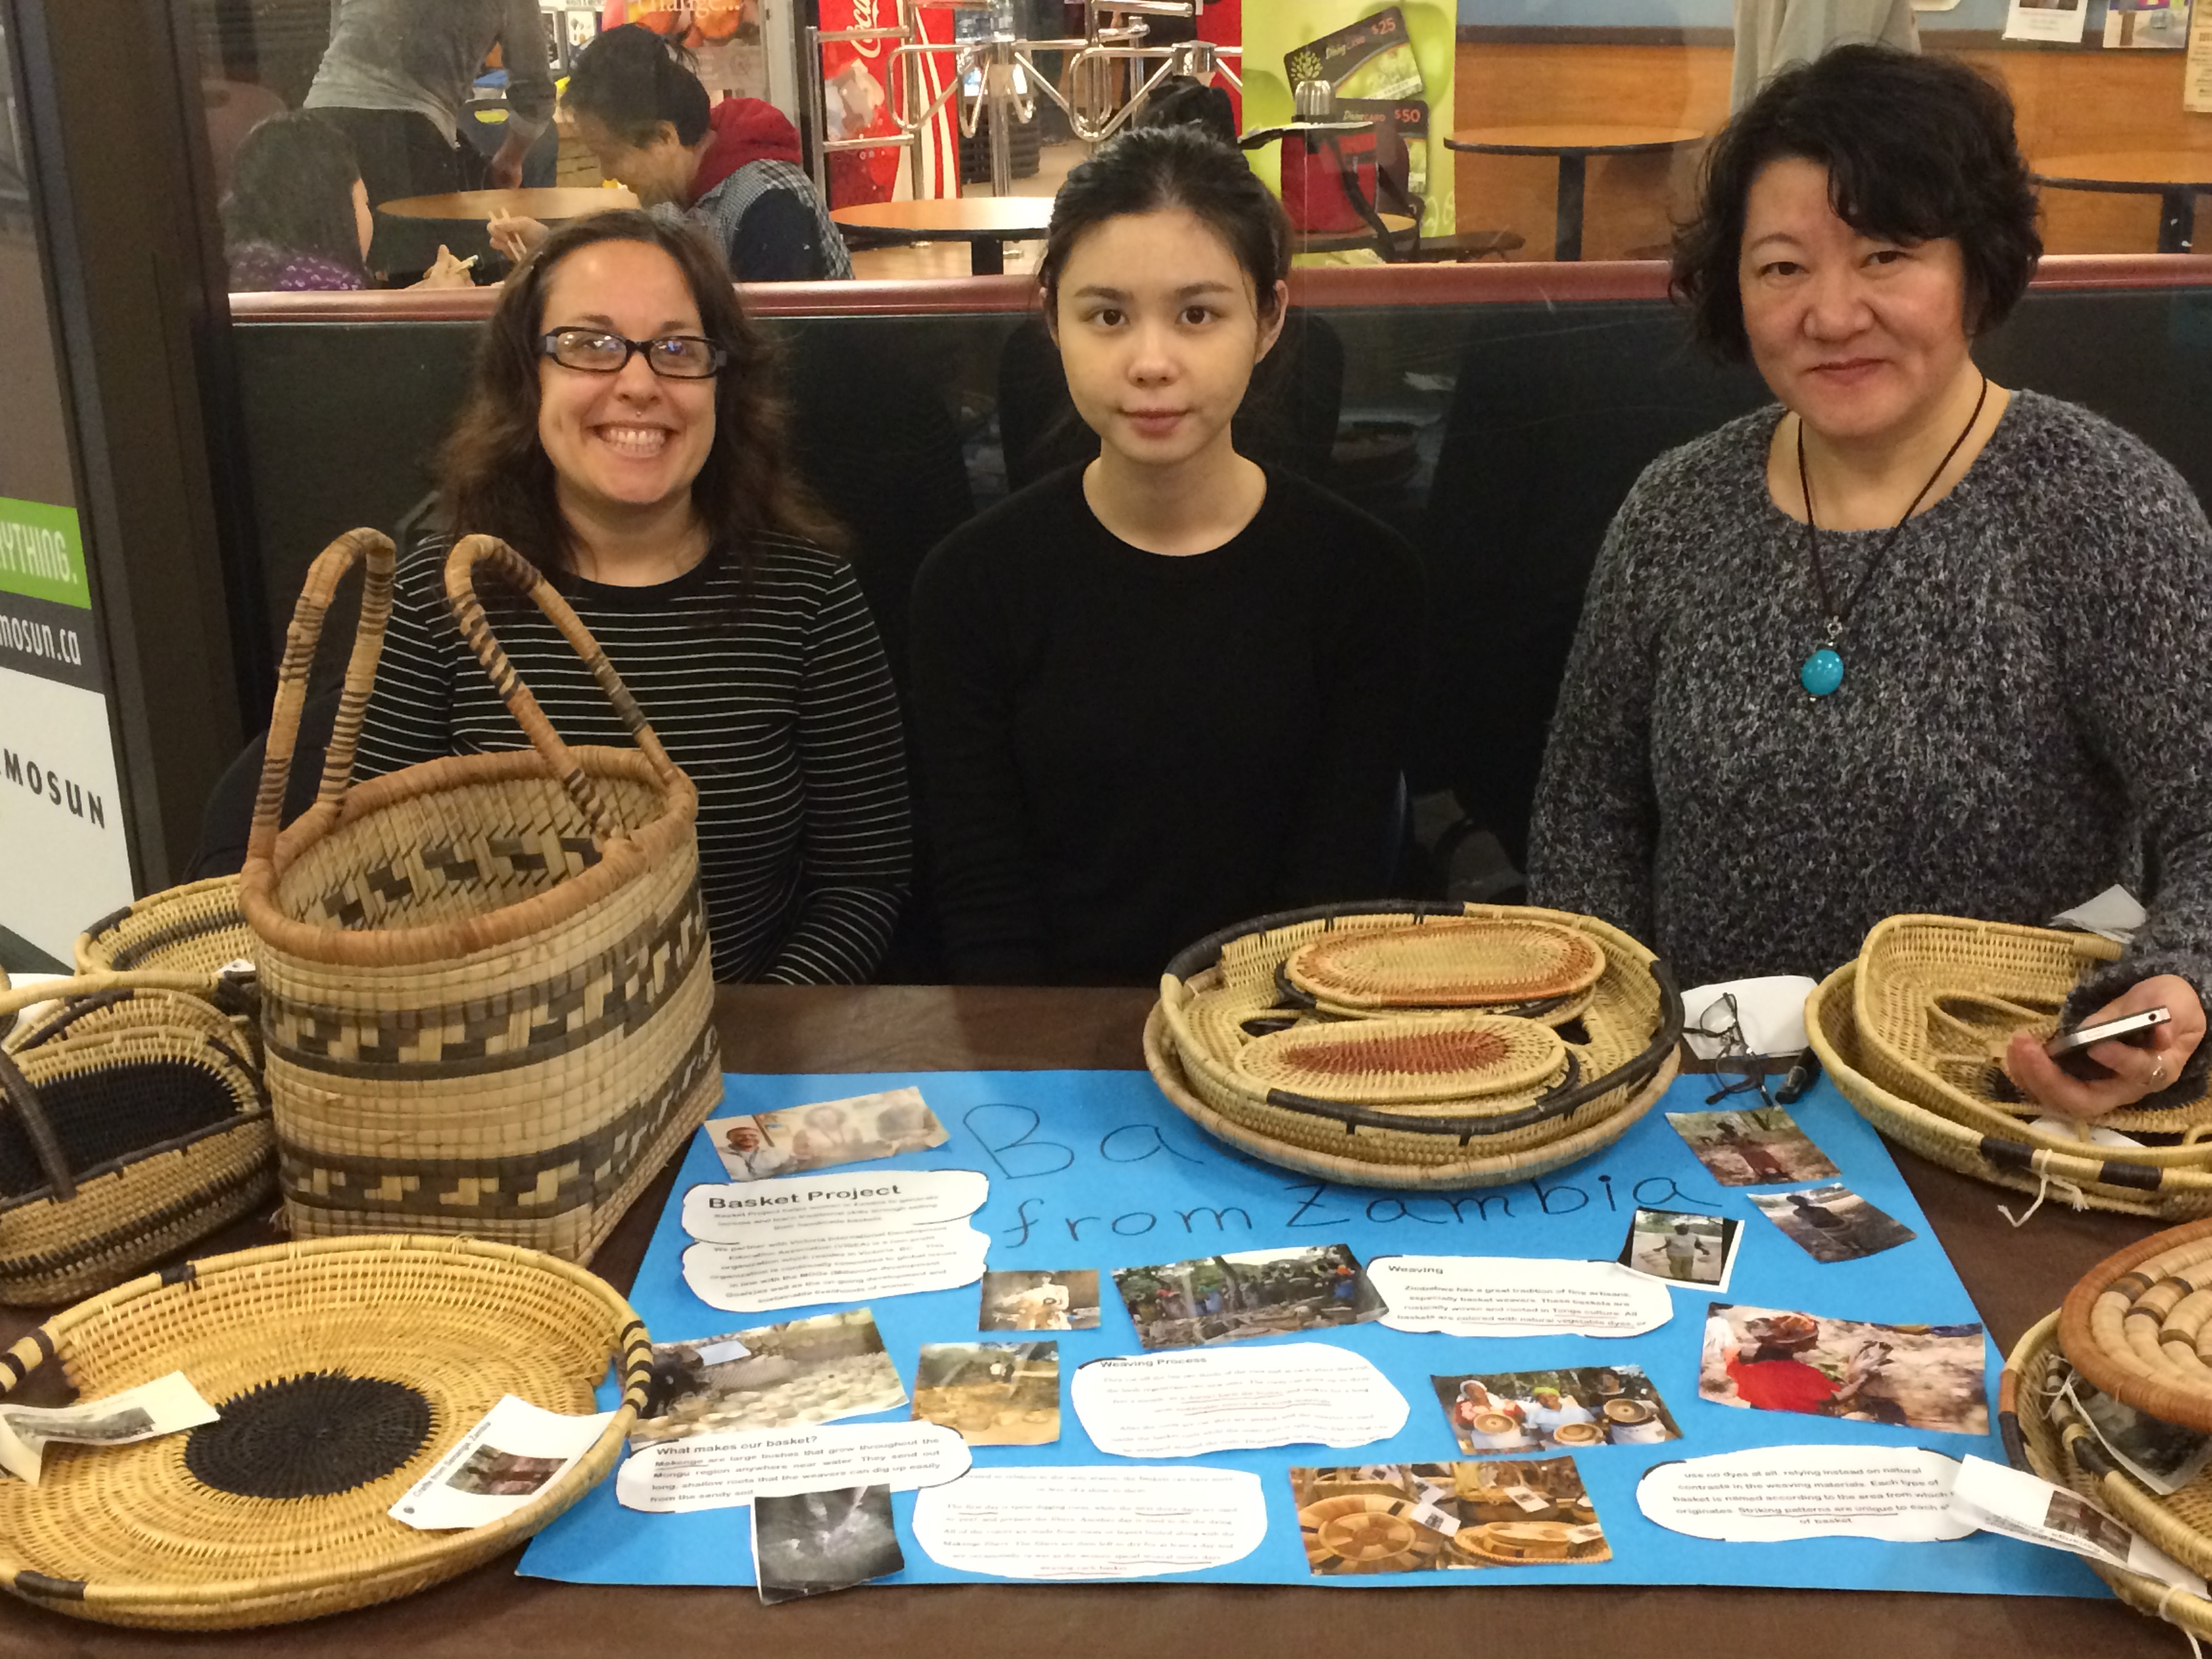 Students selling baskets at Camosun College